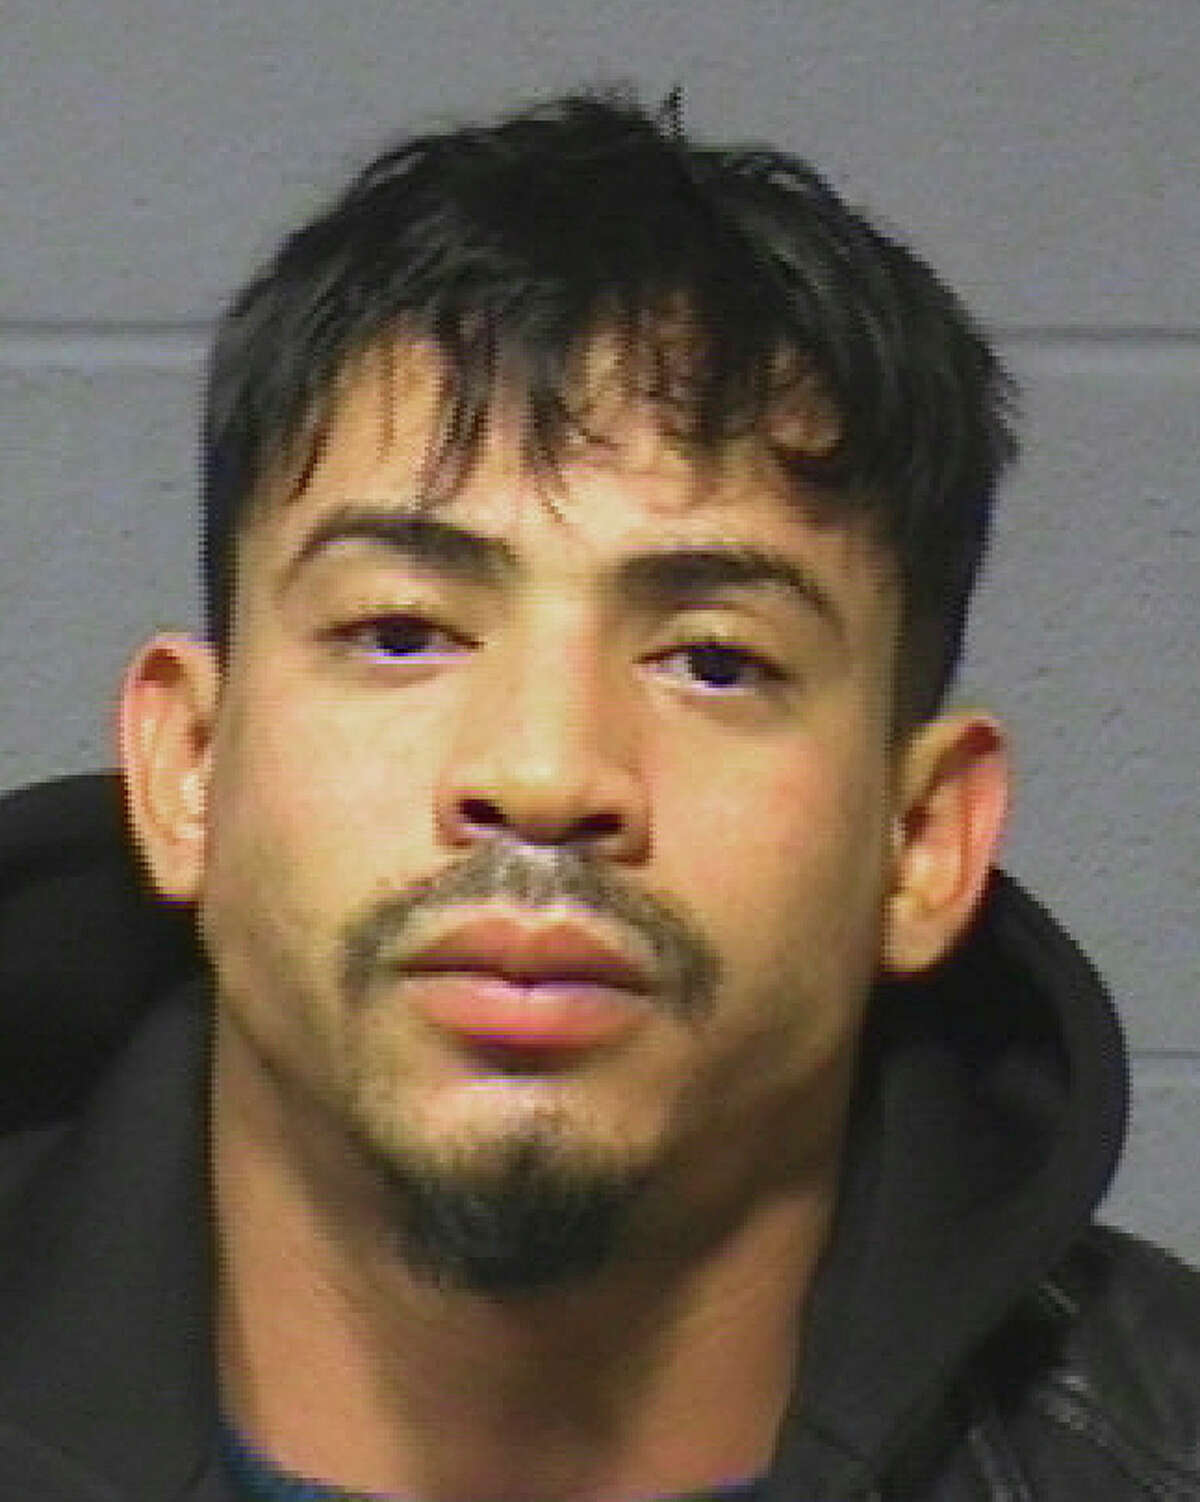 Hartford Police Department via AP This booking photograph released Dec. 7, 2015 by the Hartford, Conn., Police Department shows Amador Medina, arrested Friday on fugitive from justice charges. He is suspected of stealing skeletal remains from a Worcester, Mass. cemetery.